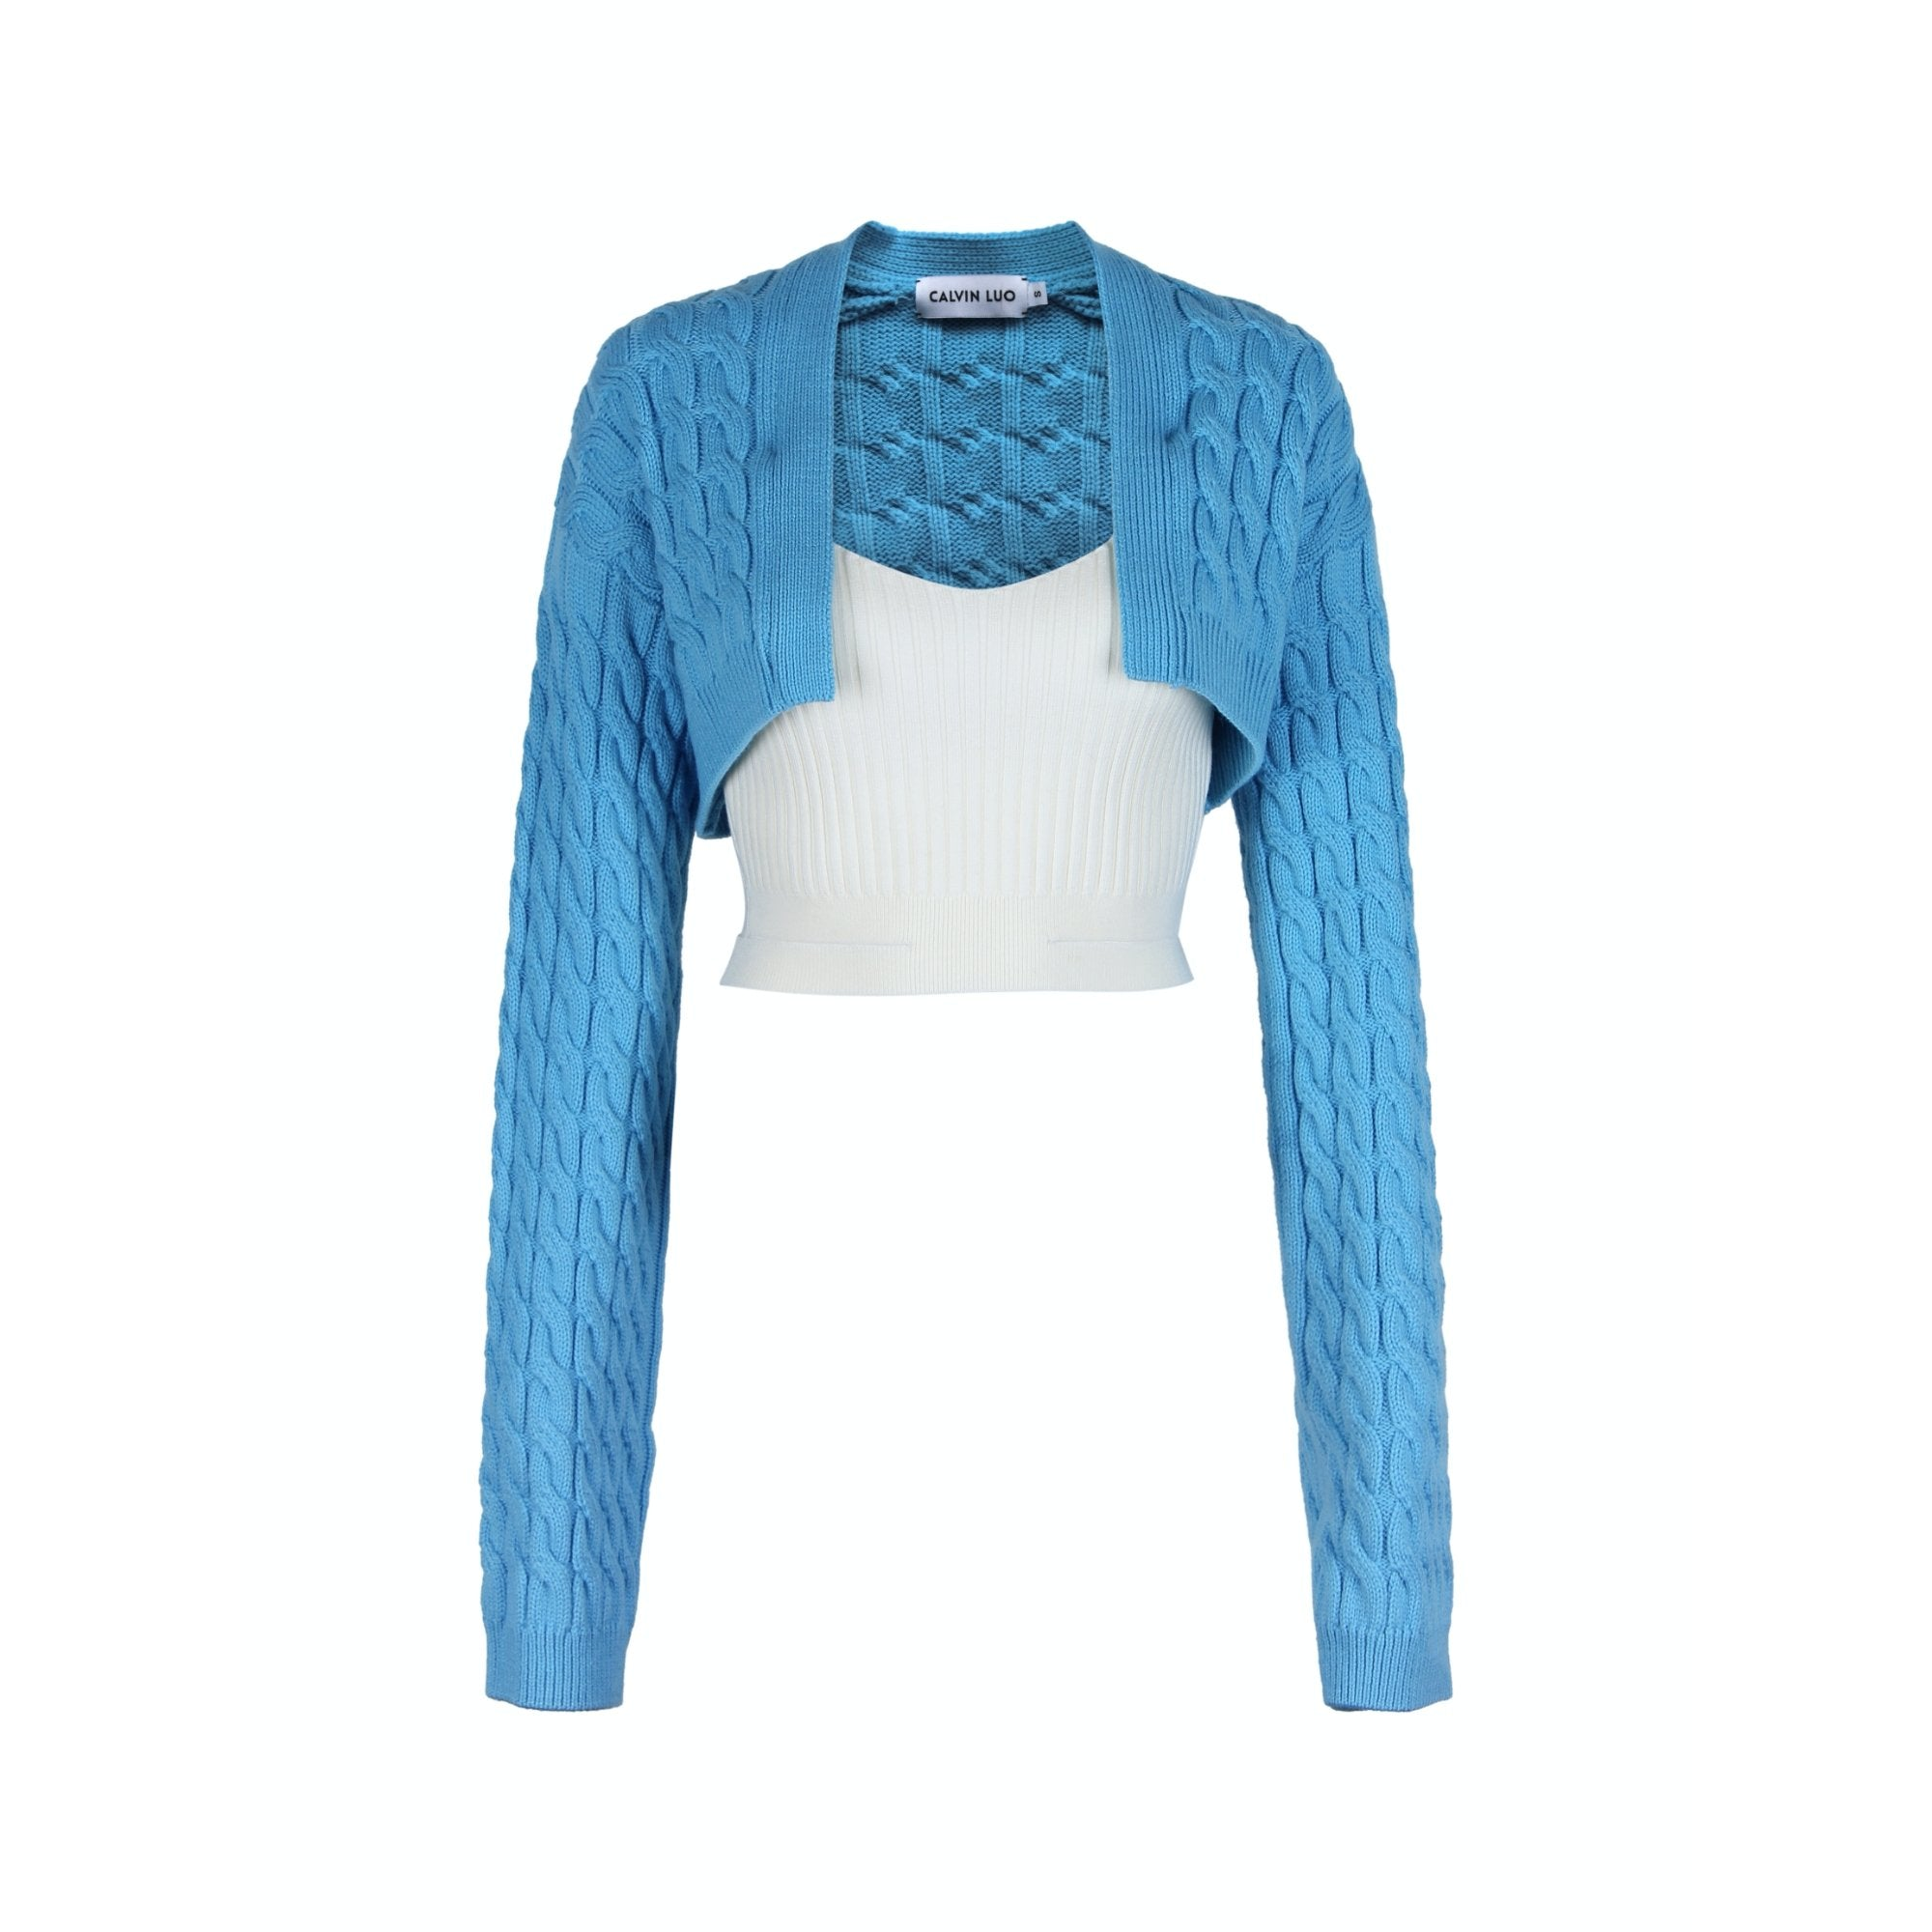 CALVIN LUO Blue Panelled Knitted Top | MADA IN CHINA